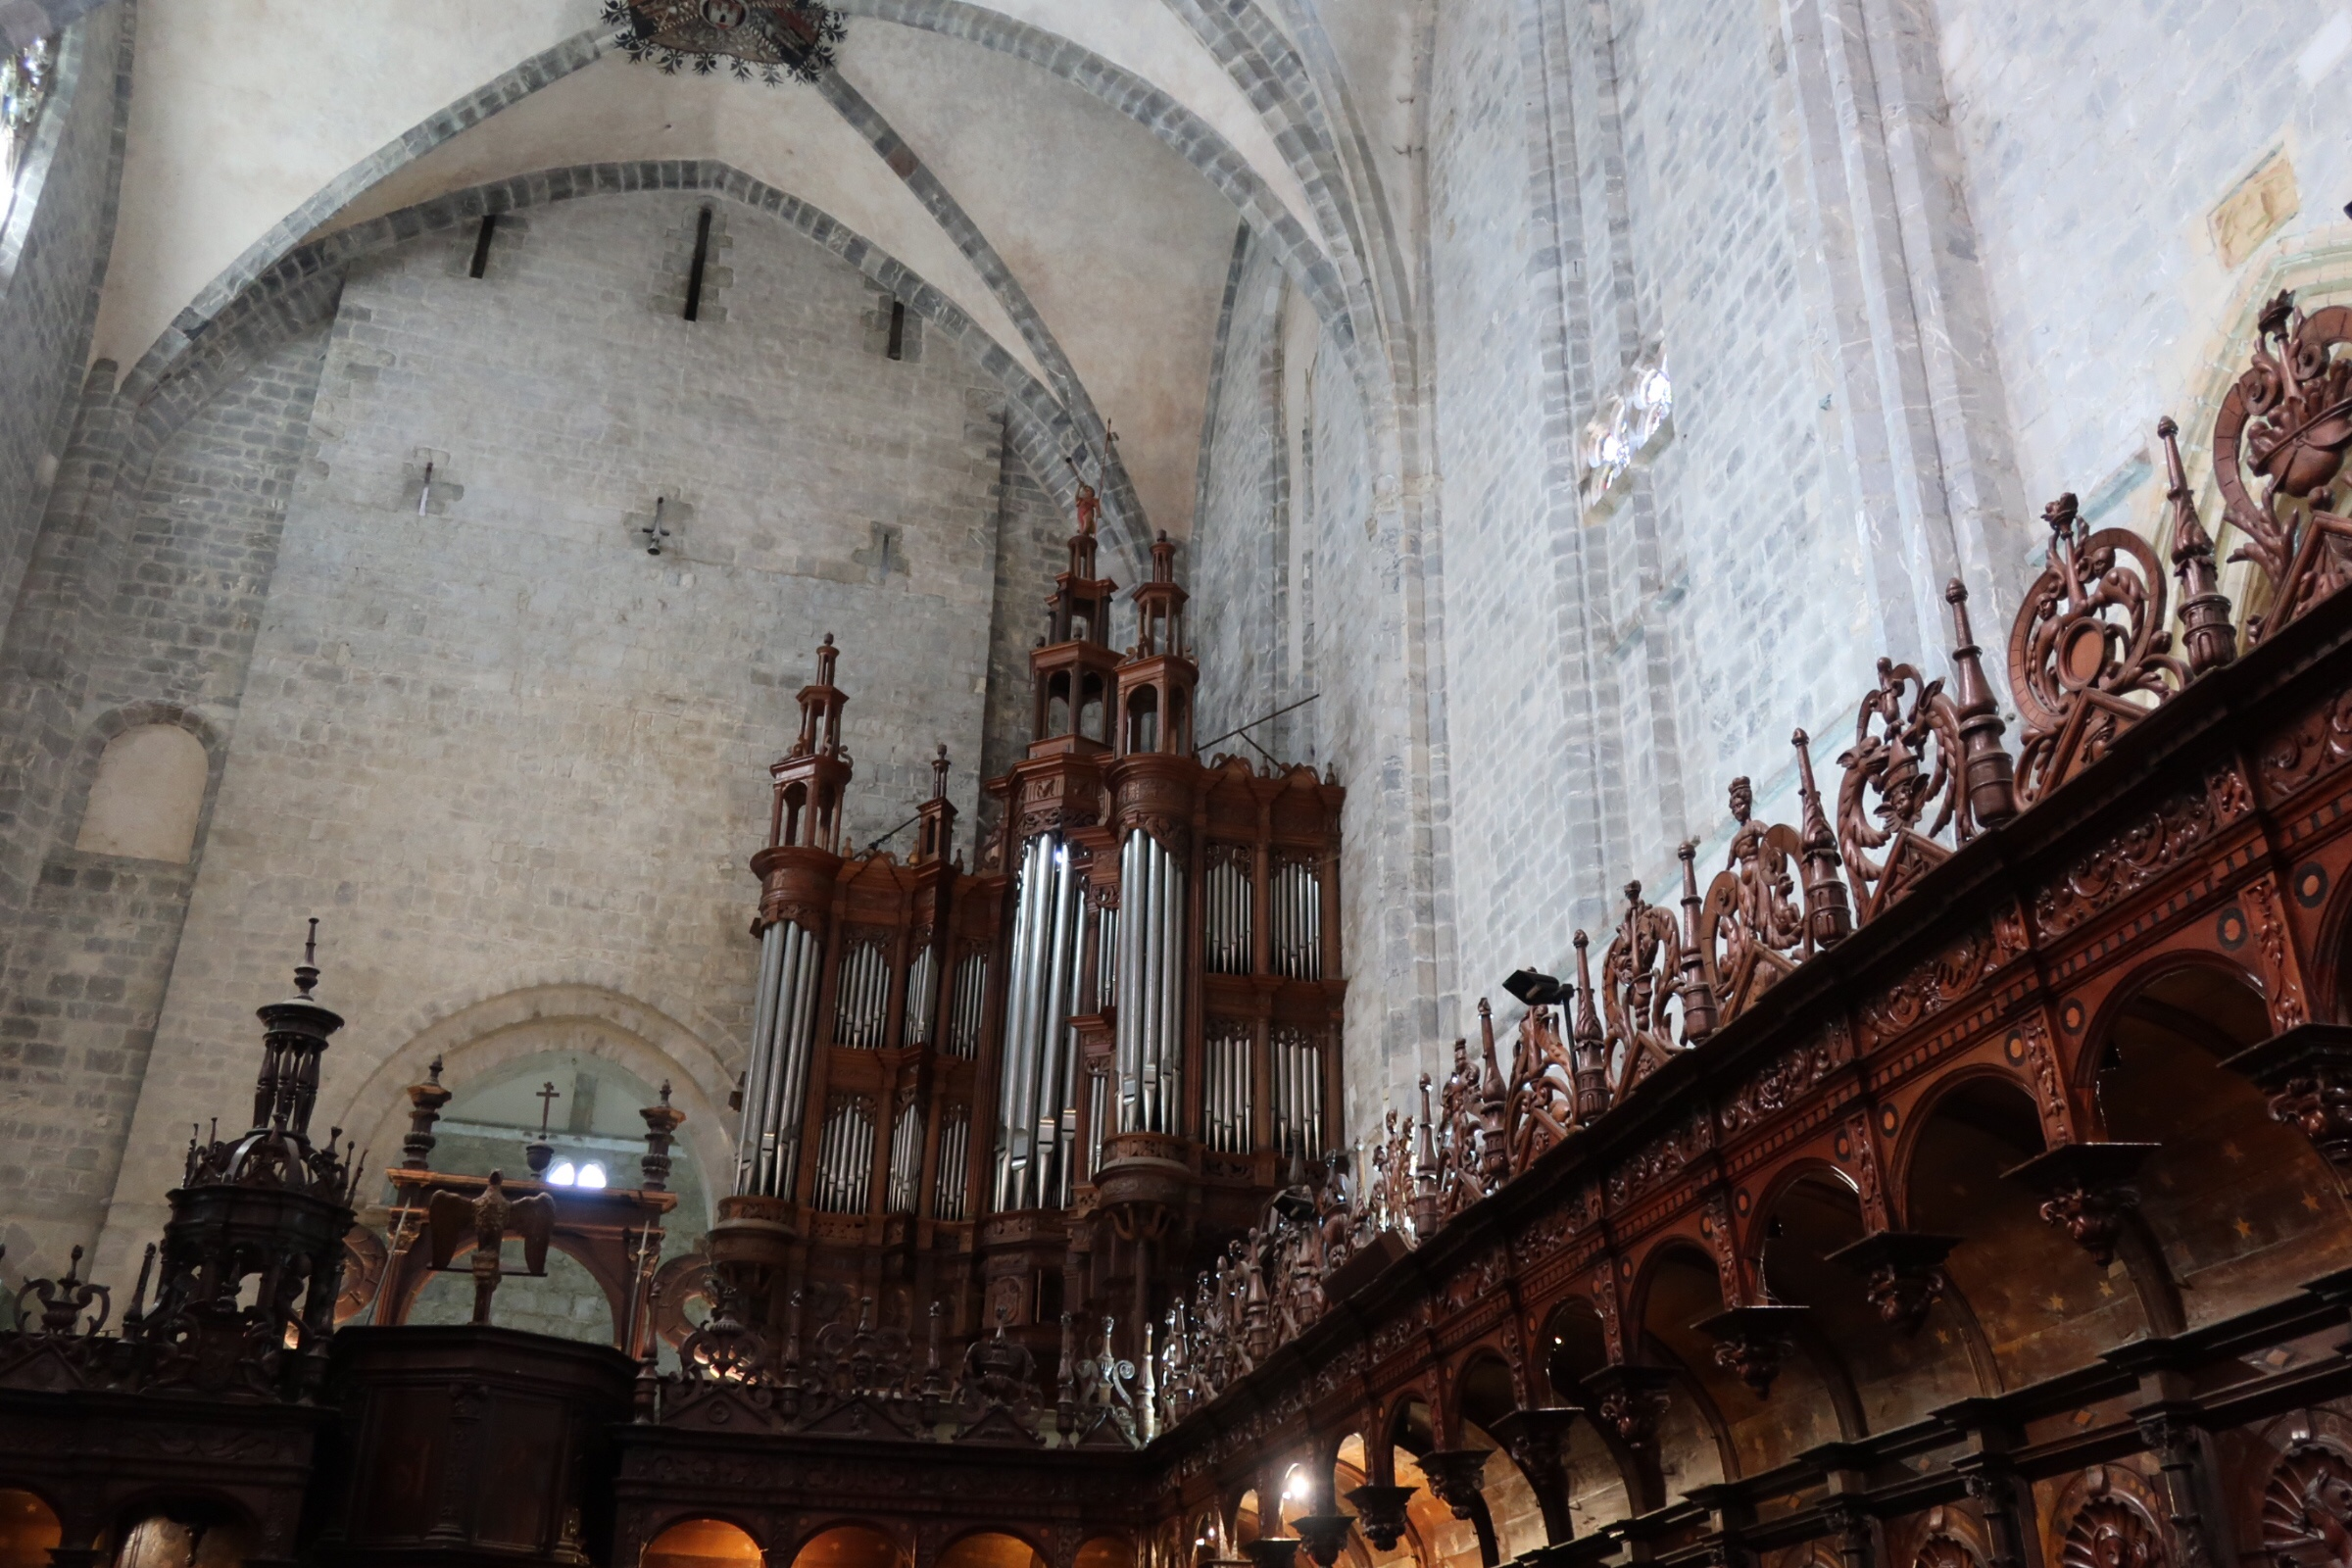 One view from the choir toward the massive organ.